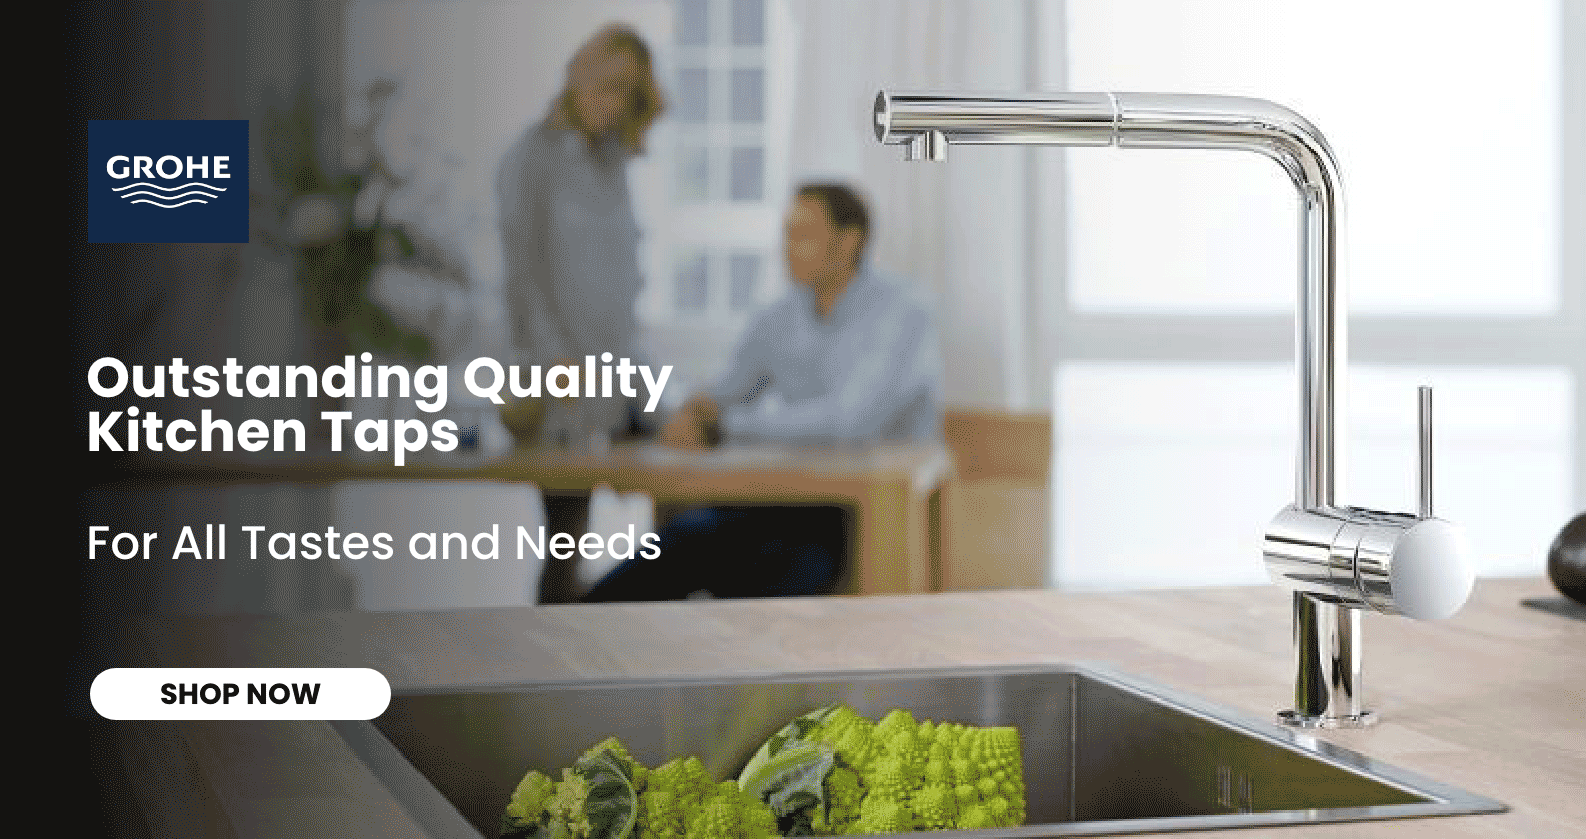 GROHE Kitchen Taps at xTWOstore